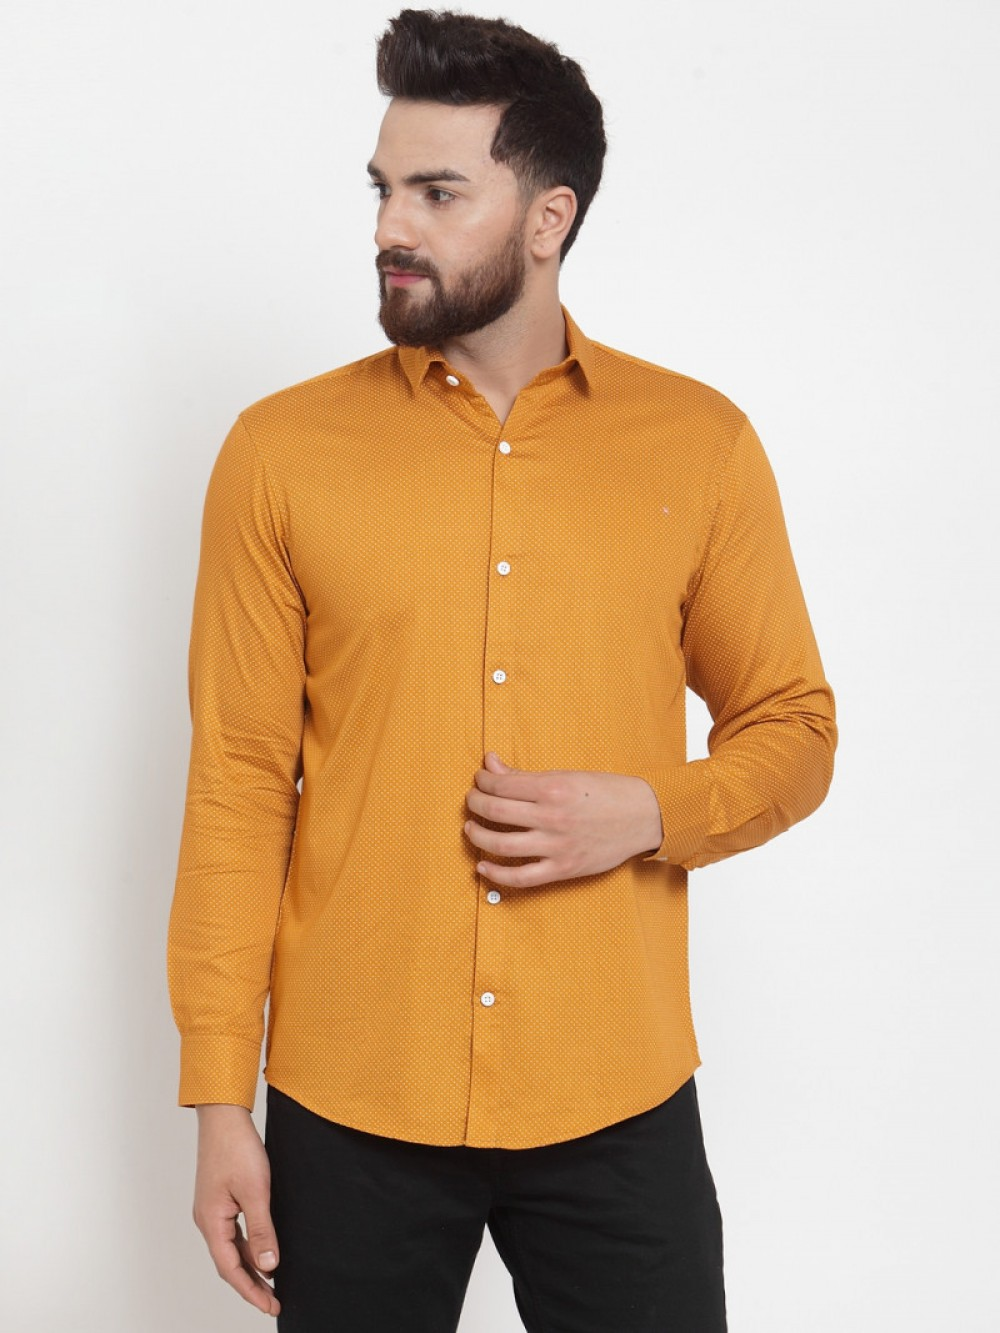 Yellow Color Small Dott Wear Shirt